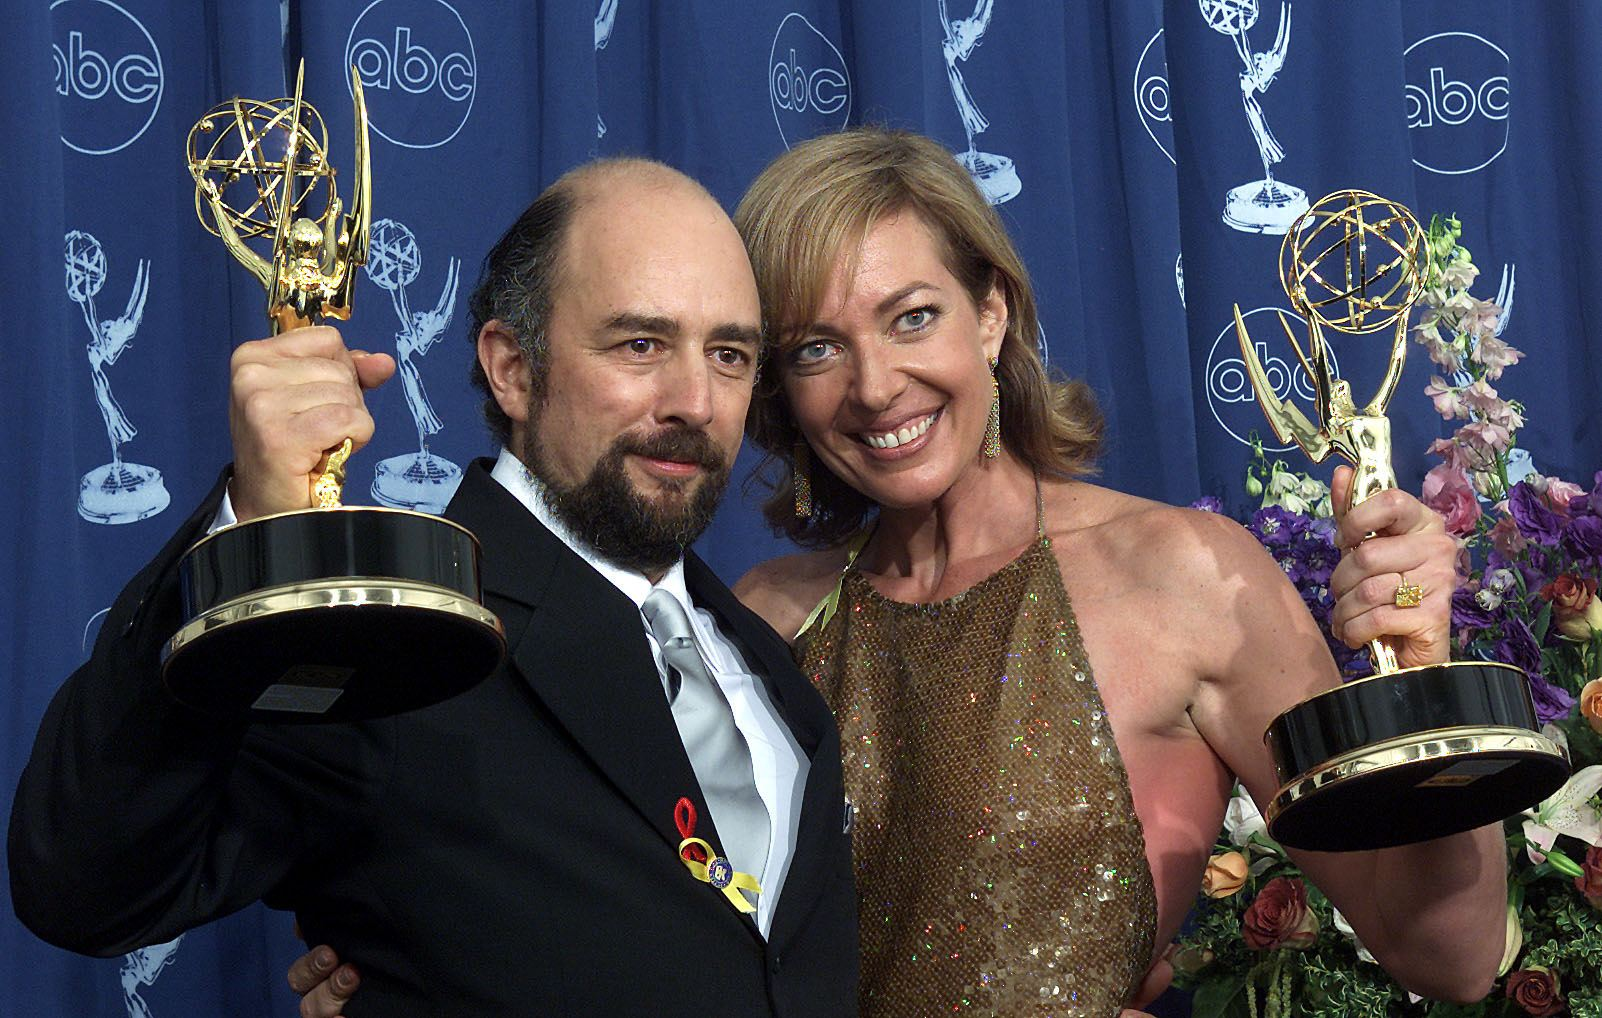 Richard Schiff (left) with his Primetime Emmy award in 2001.